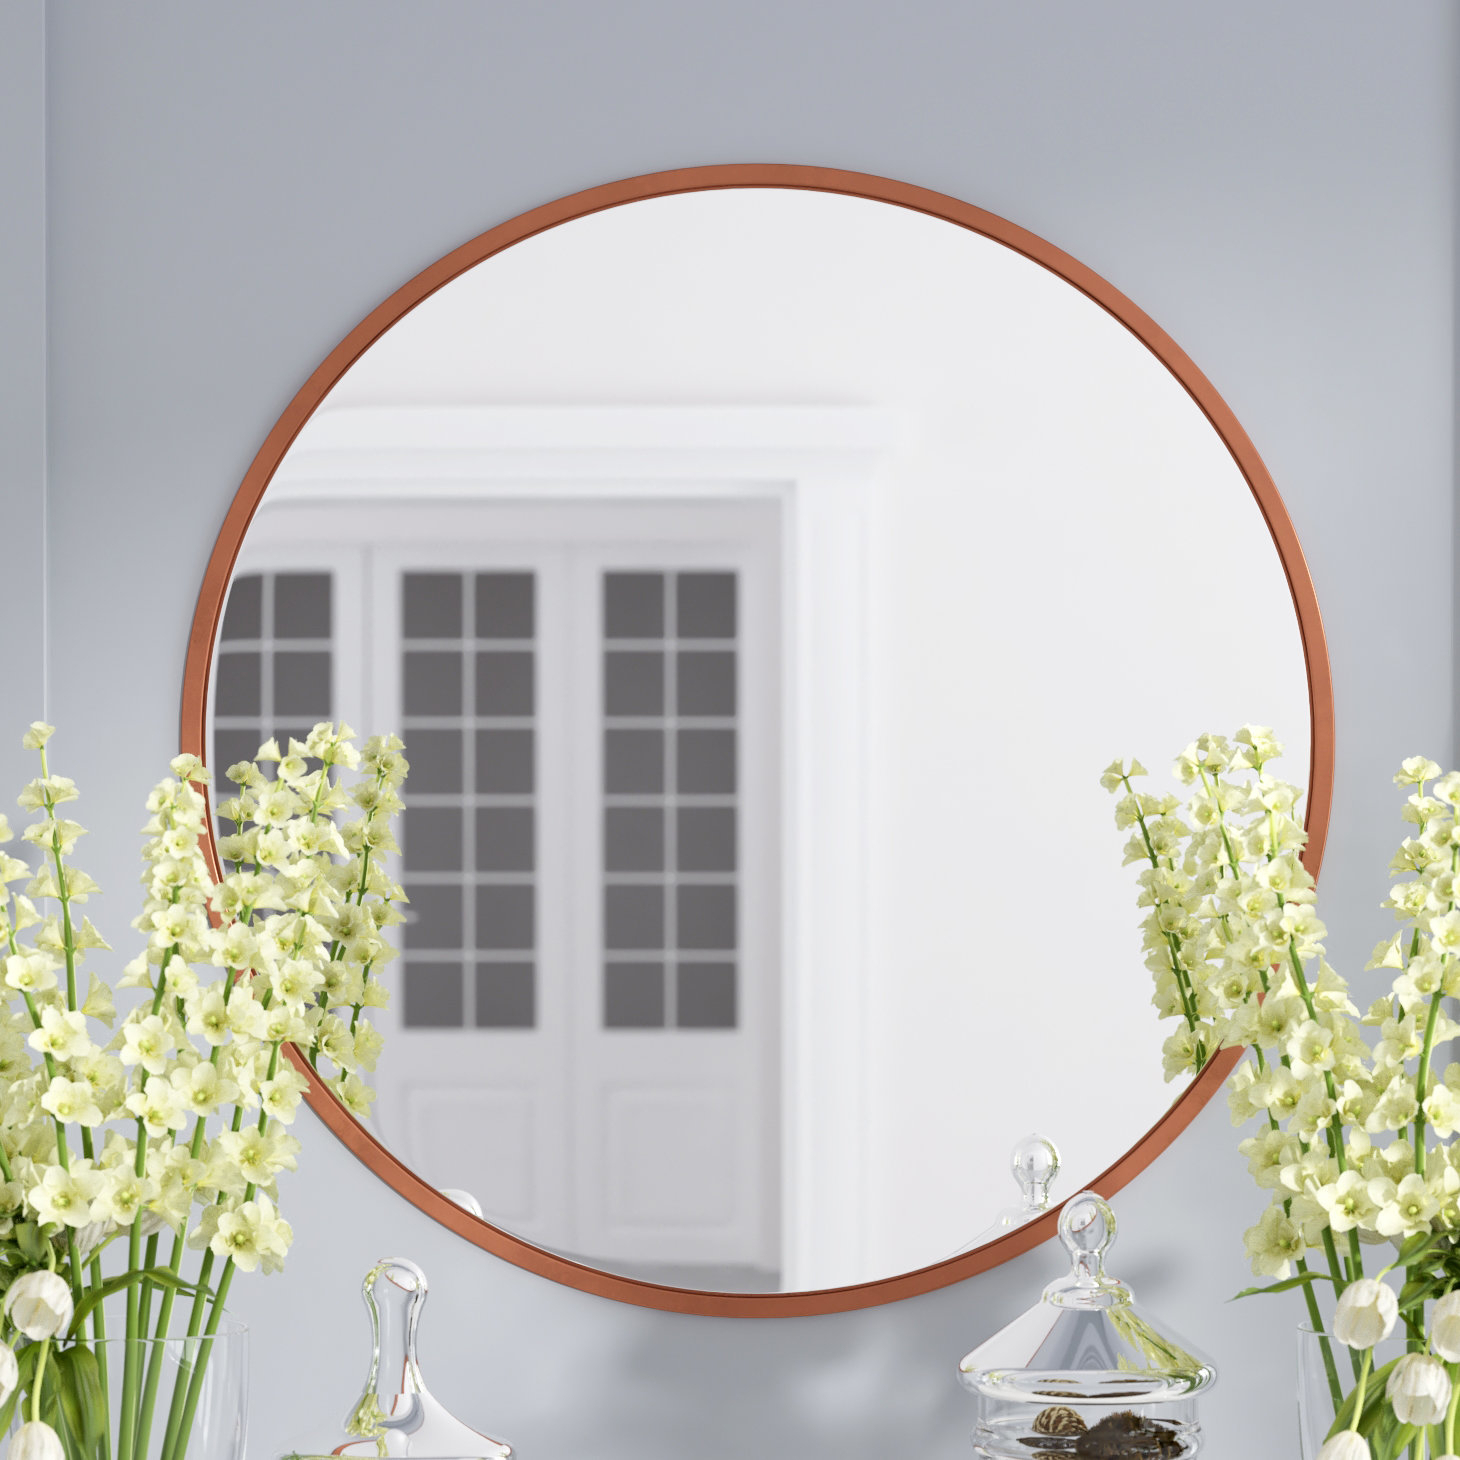 Modern & Contemporary Accent Mirror With Loftis Modern & Contemporary Accent Wall Mirrors (View 7 of 20)